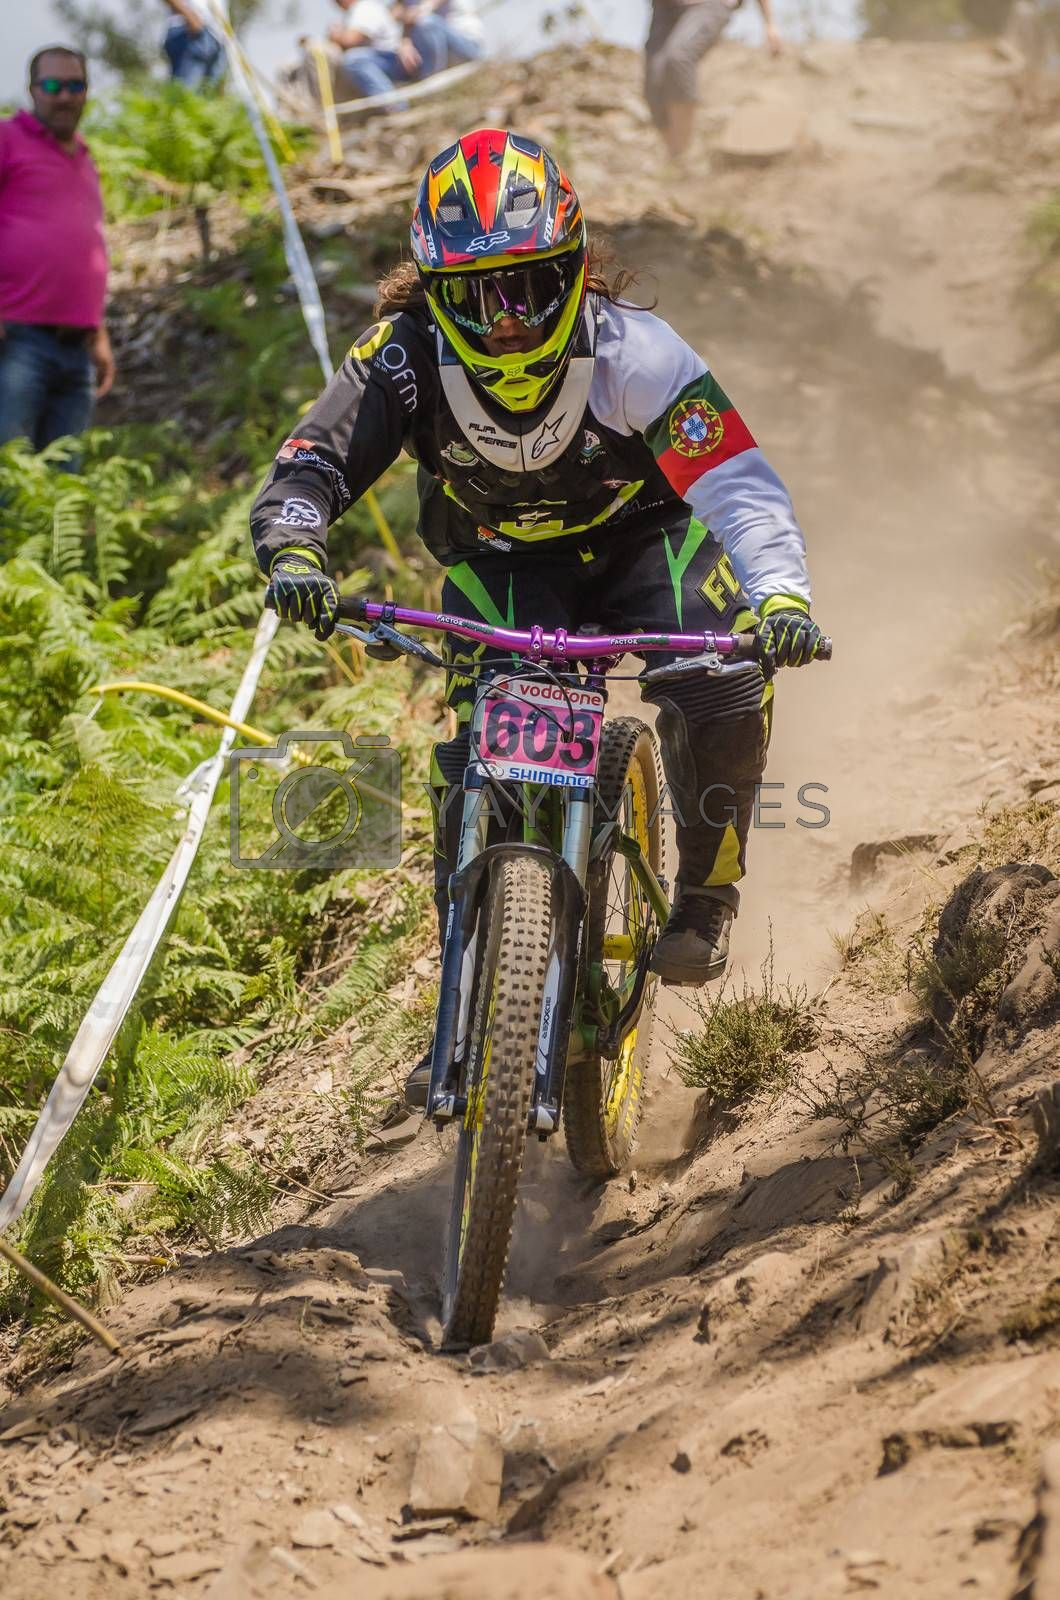 GOIS, PORTUGAL - JUNE 23: Filipa Peres during the 4th Stage of the Taca de Portugal Downhill Vodafone on june 23, 2013 in Gois, Portugal.